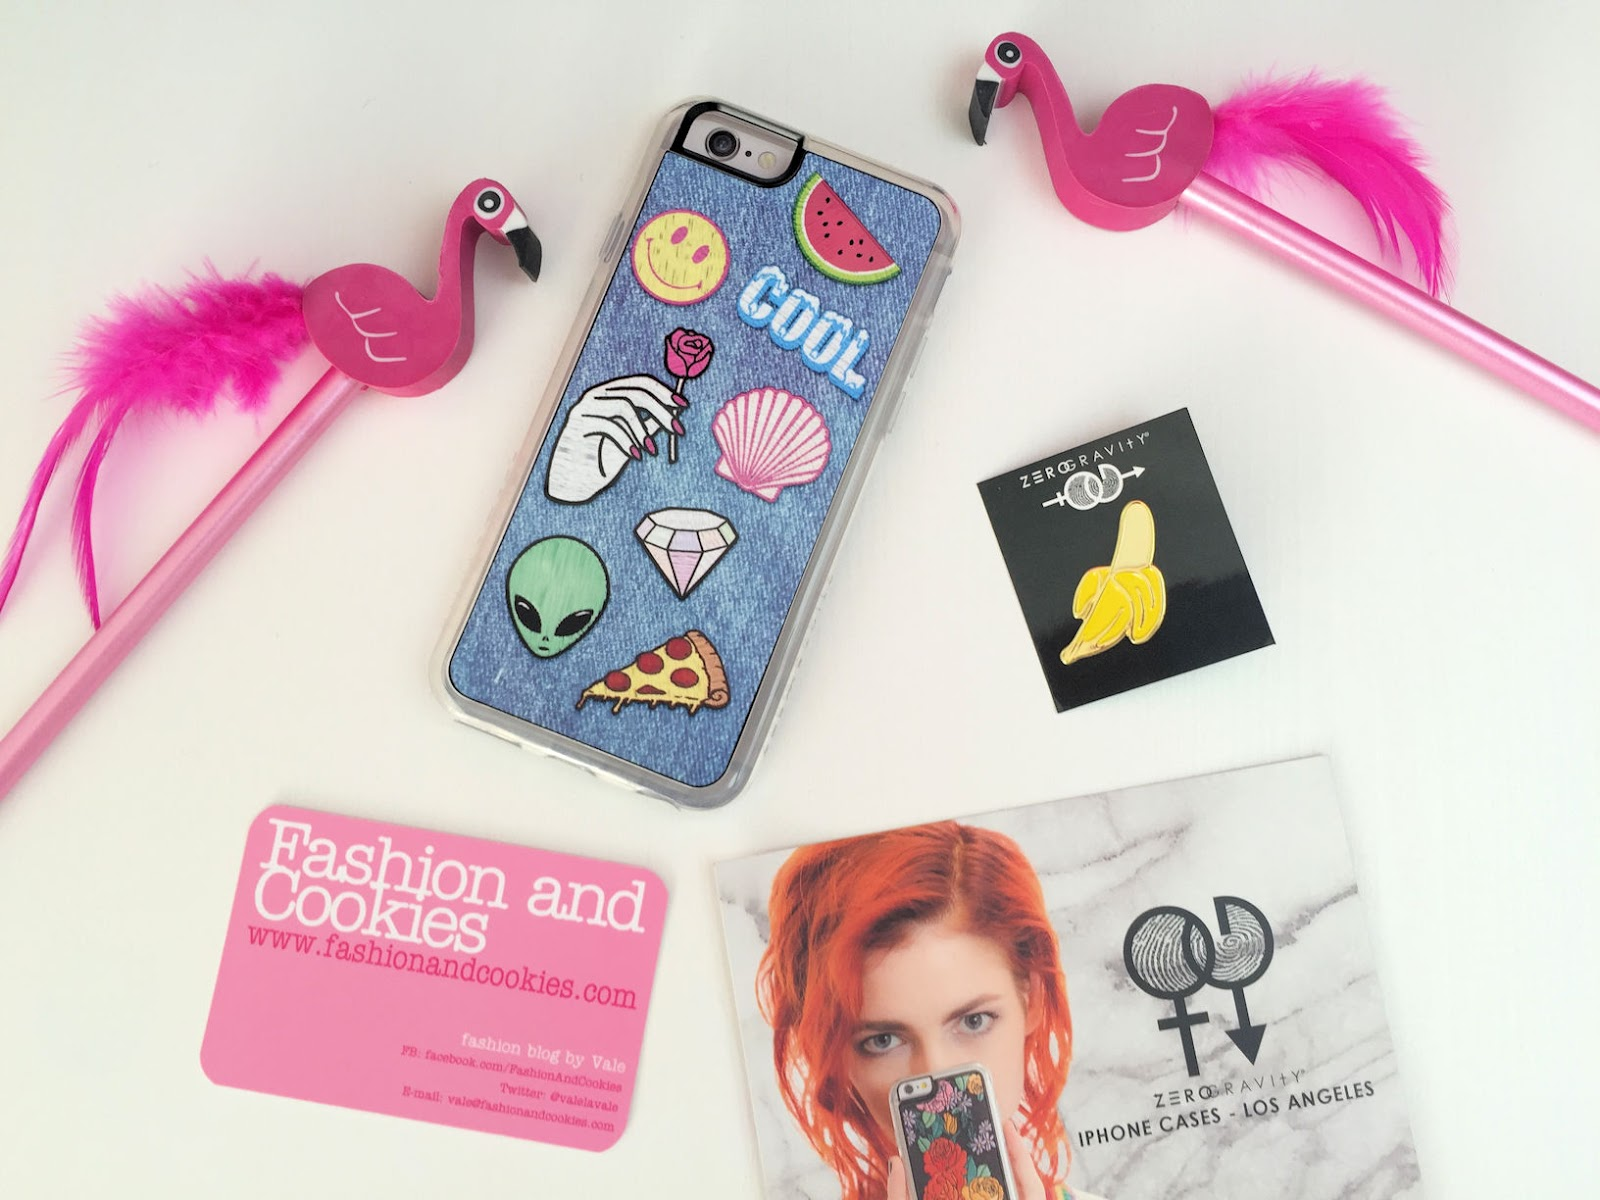 Zero Gravity iPhone 6 riot case and banana pin on Fashion and Cookies fashion and beauty blog, fashion blogger